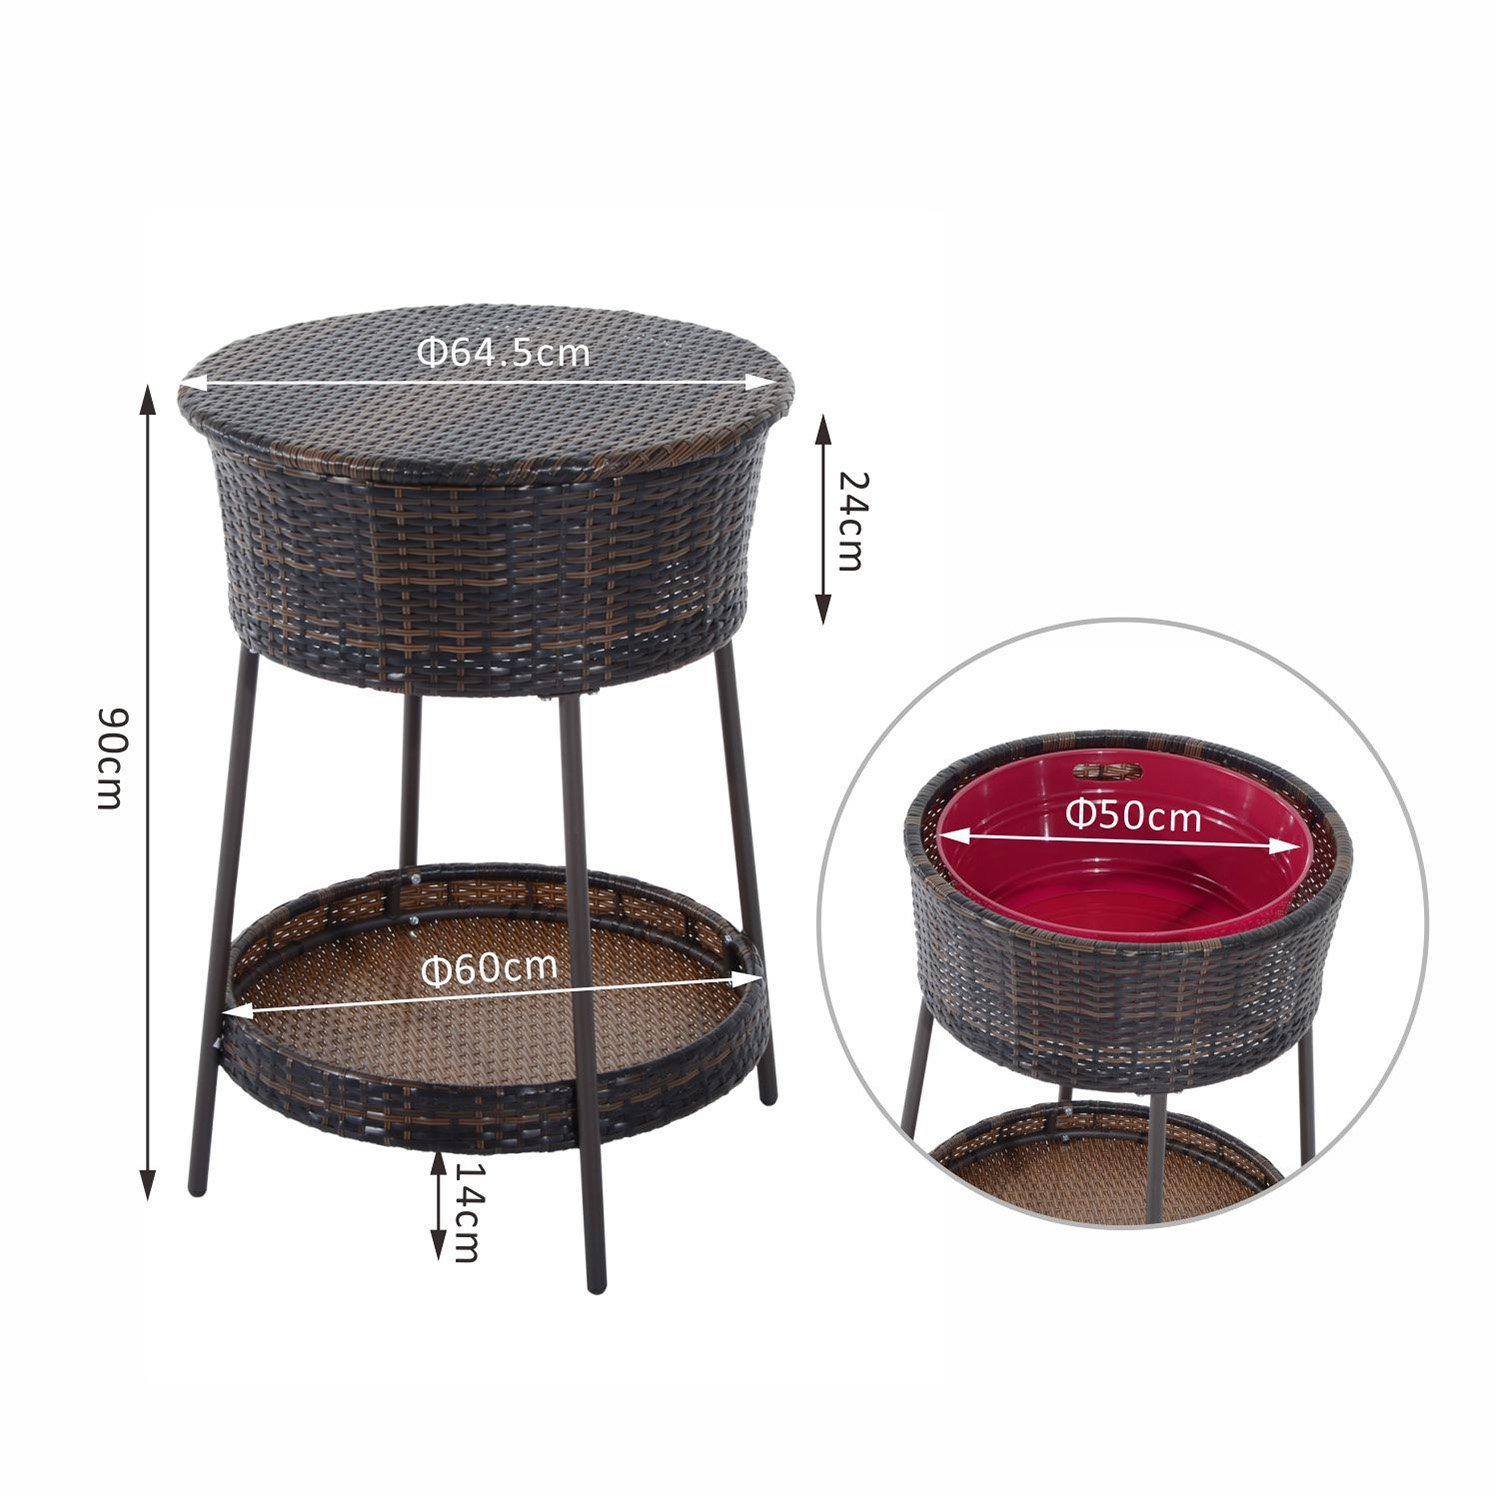 Outsunny Rattan Ice Bucket Bar Table Cooler Cool Drink Coffee